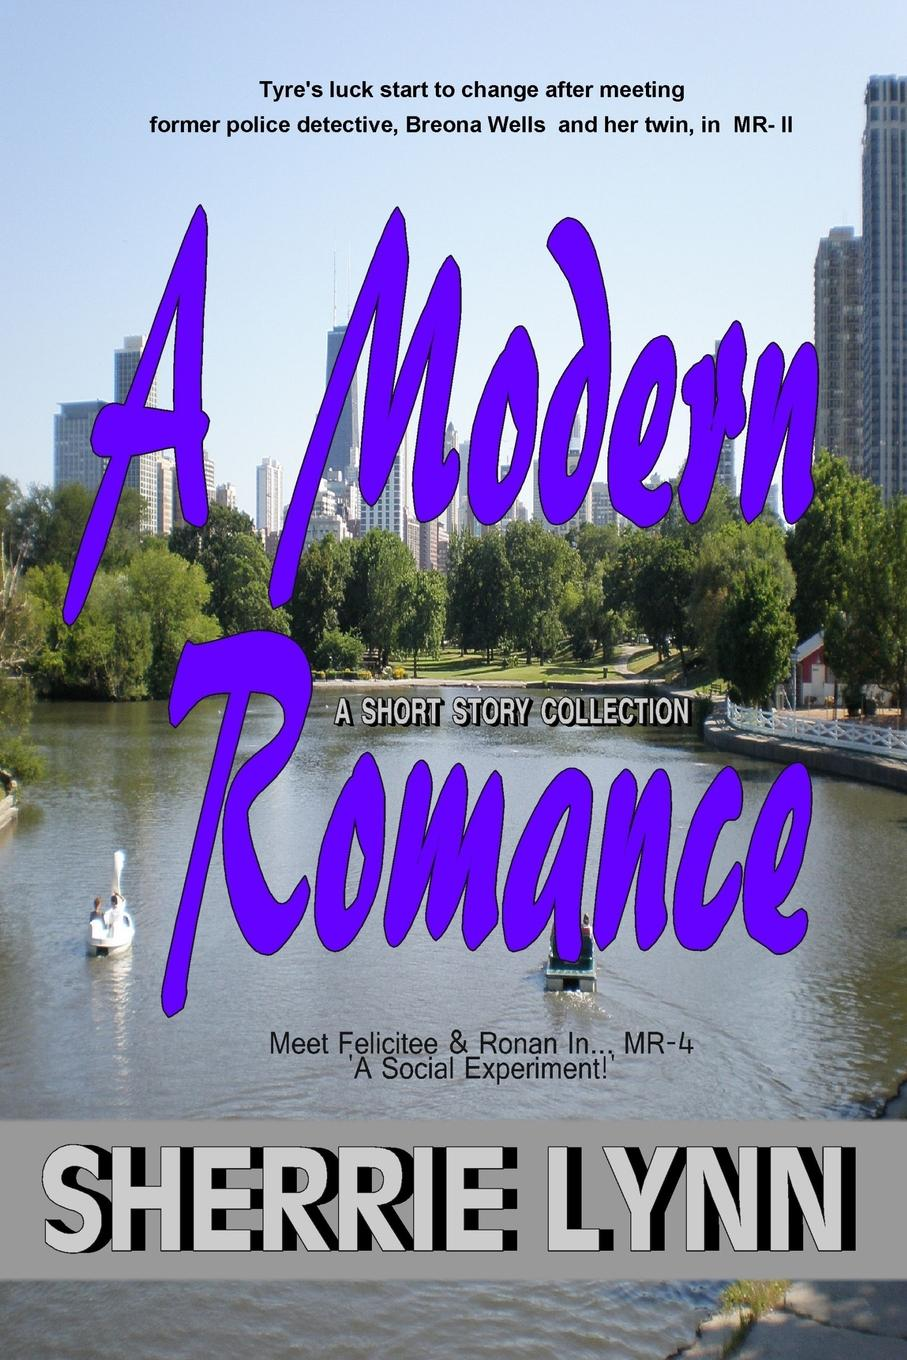 Sherrie Lynn A Modern Romance Short Stories